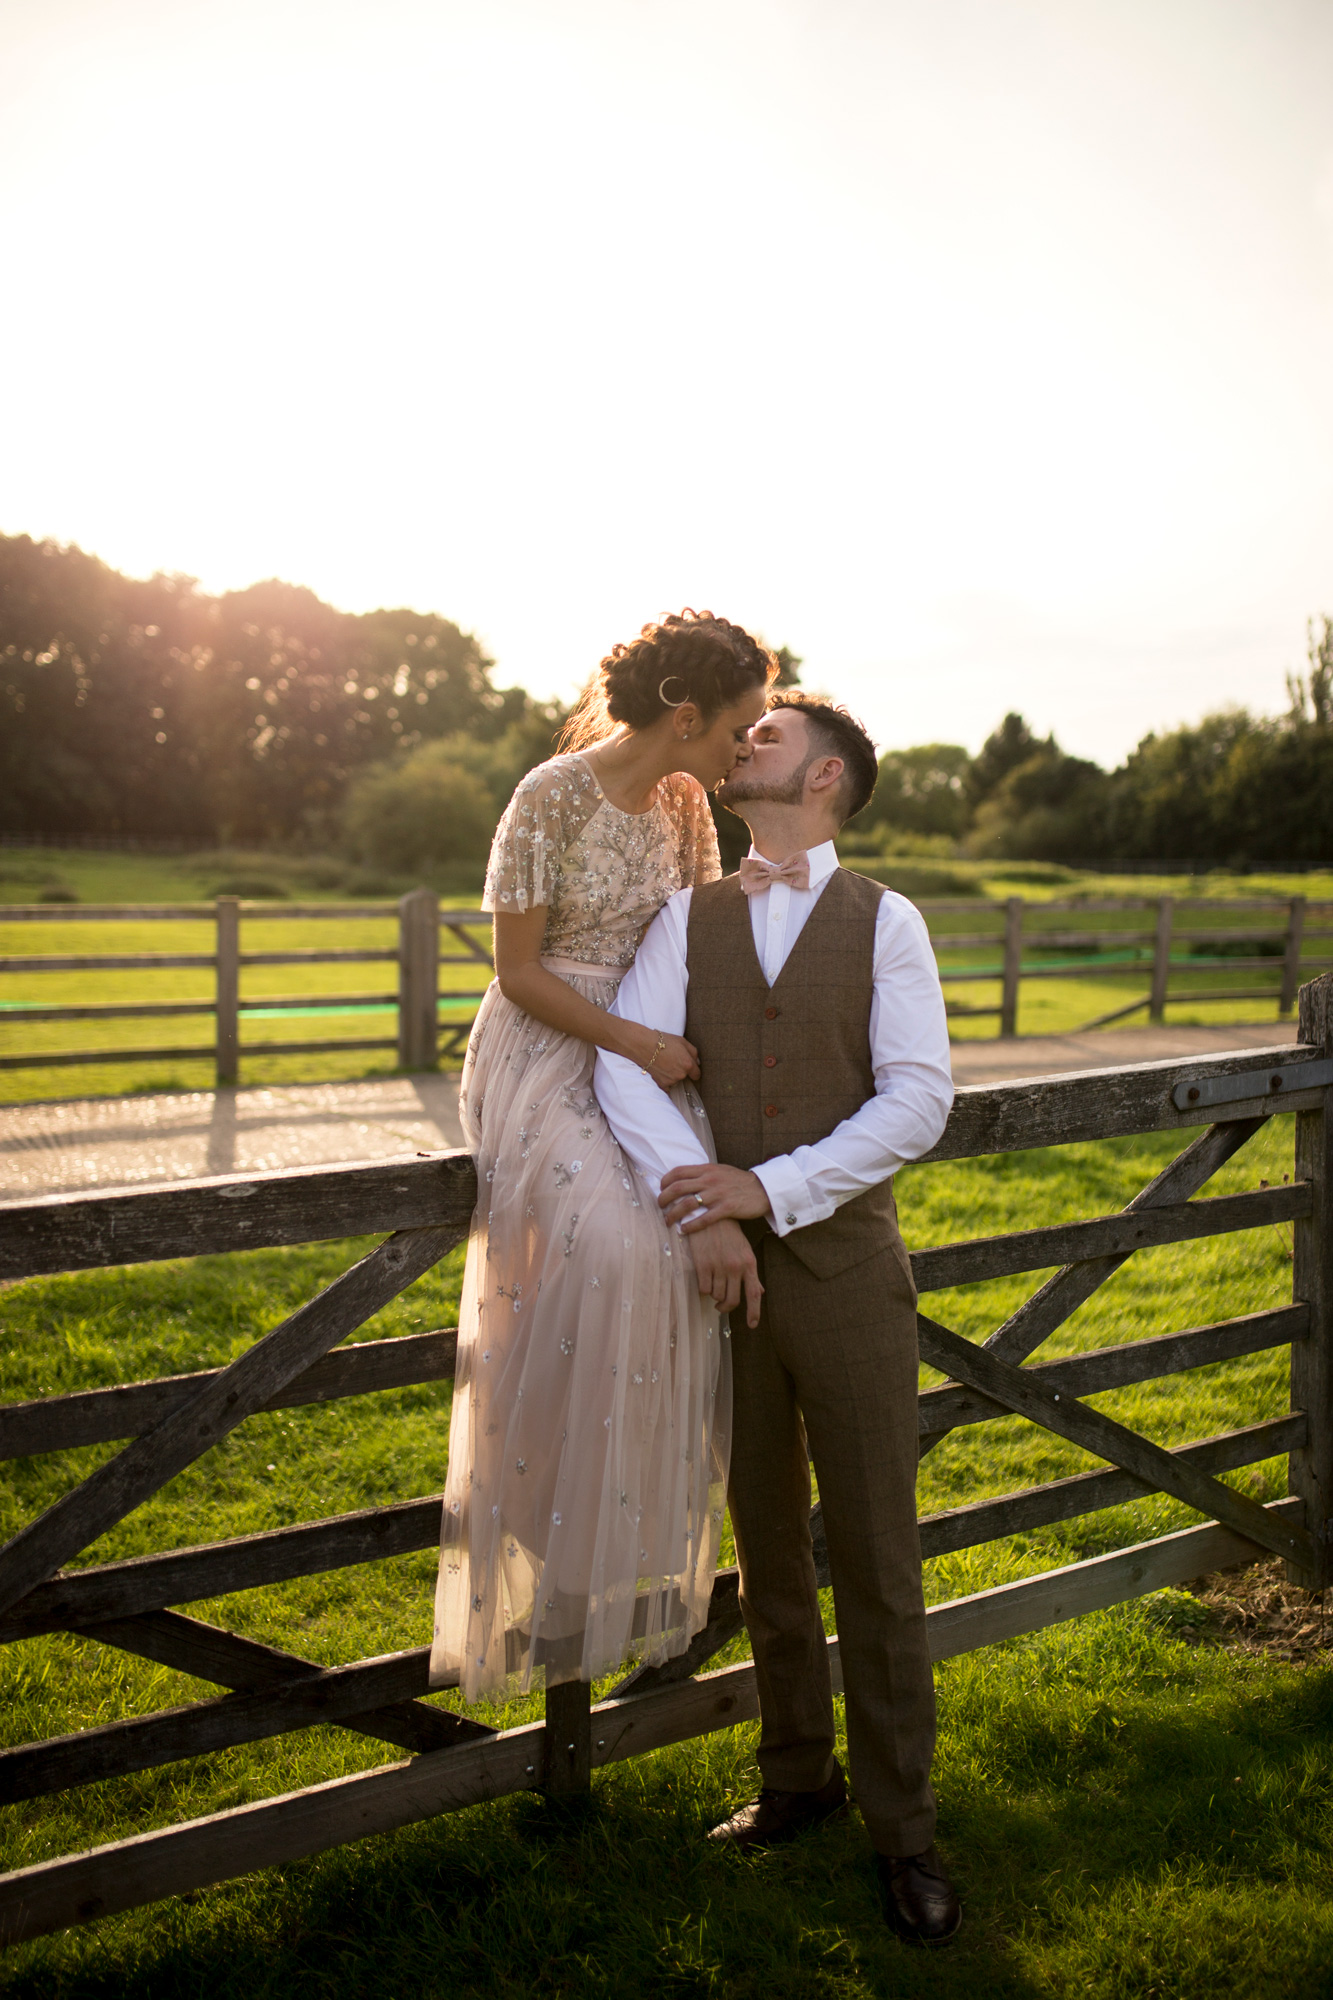 Bride and groom sitting on fence creative photography.jpg